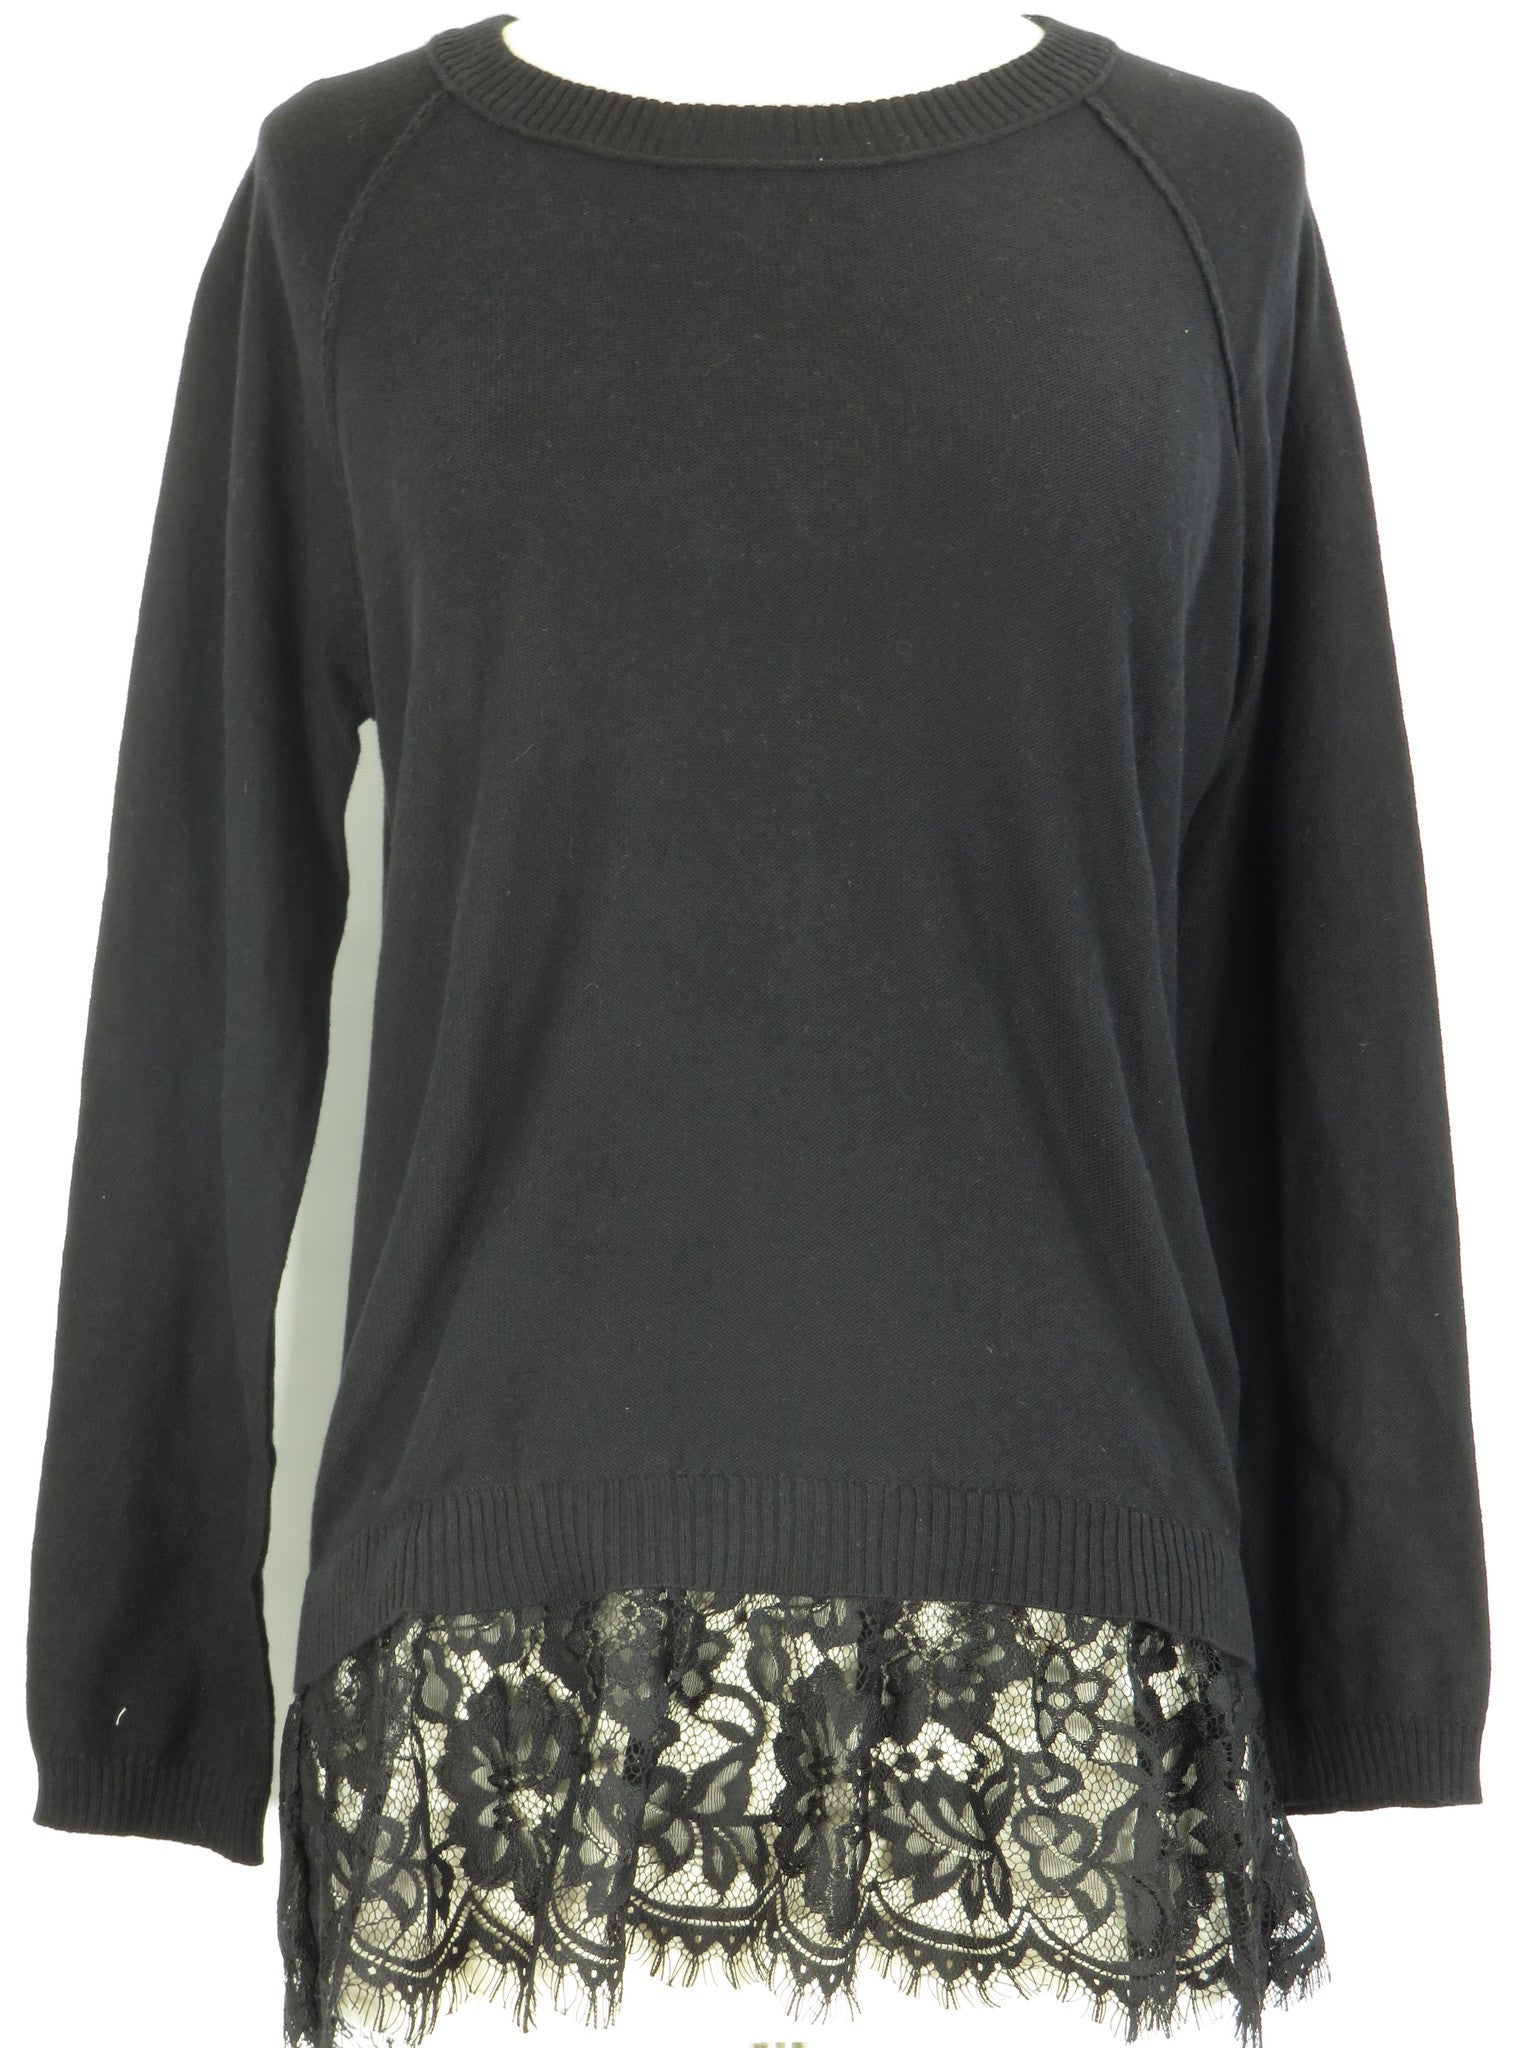 Central Park West Women Black Knit Lace Bottom Crew Neck